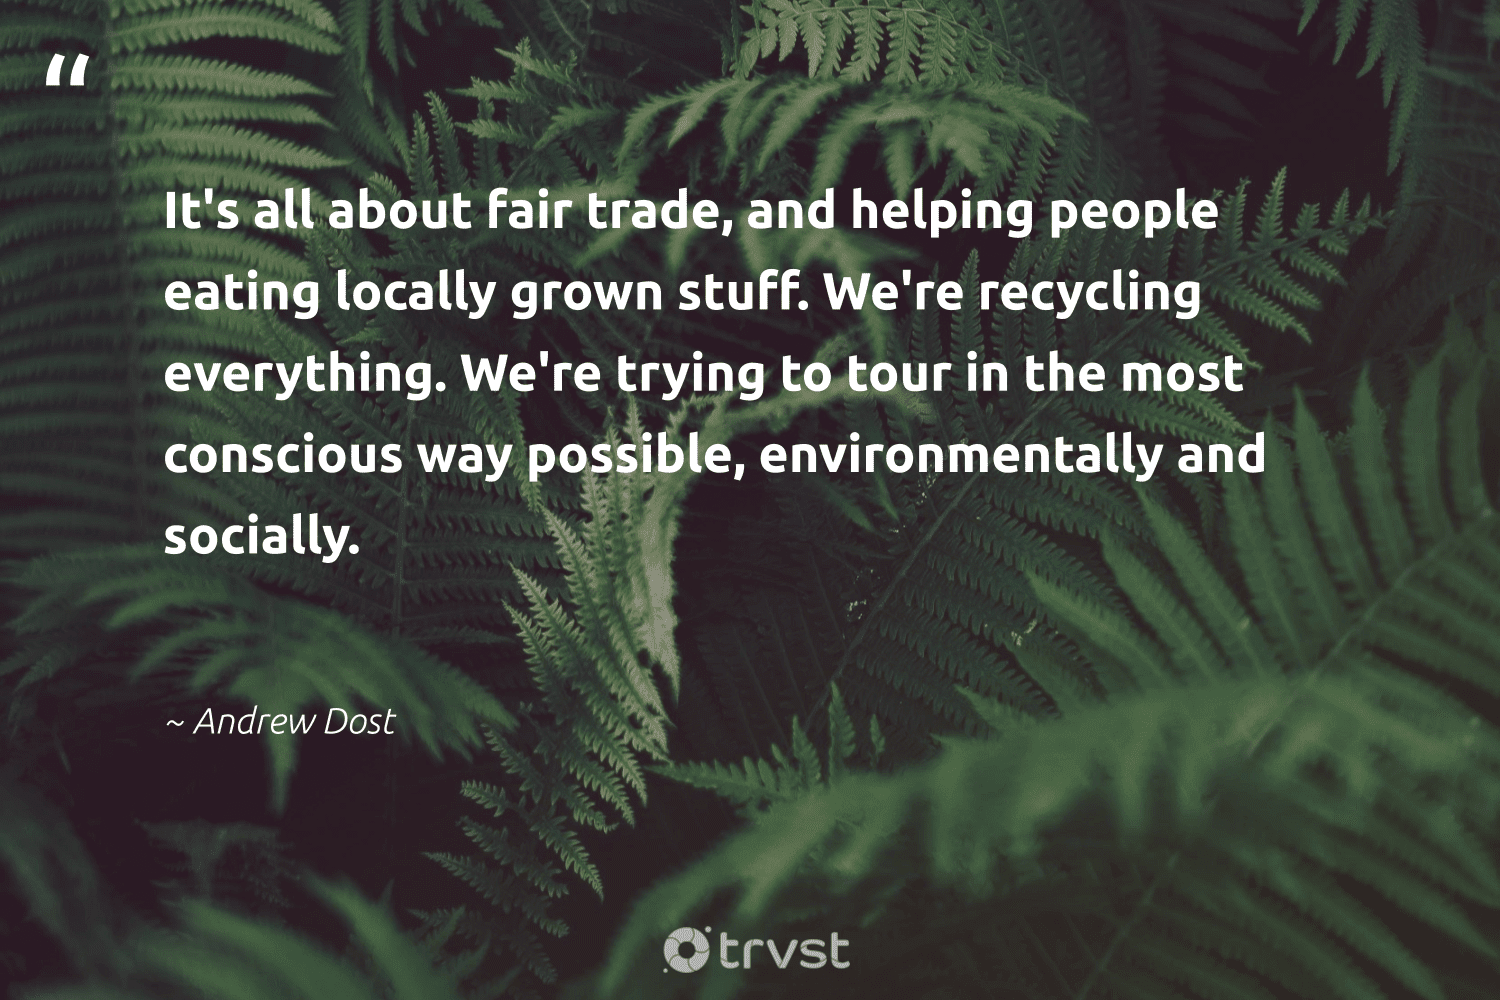 """""""It's all about fair trade, and helping people eating locally grown stuff. We're recycling everything. We're trying to tour in the most conscious way possible, environmentally and socially.""""  - Andrew Dost #trvst #quotes #recycling #refuse #environment #wastefree #impact #reducereuserecycle #trash #dogood #thinkgreen #recycled"""